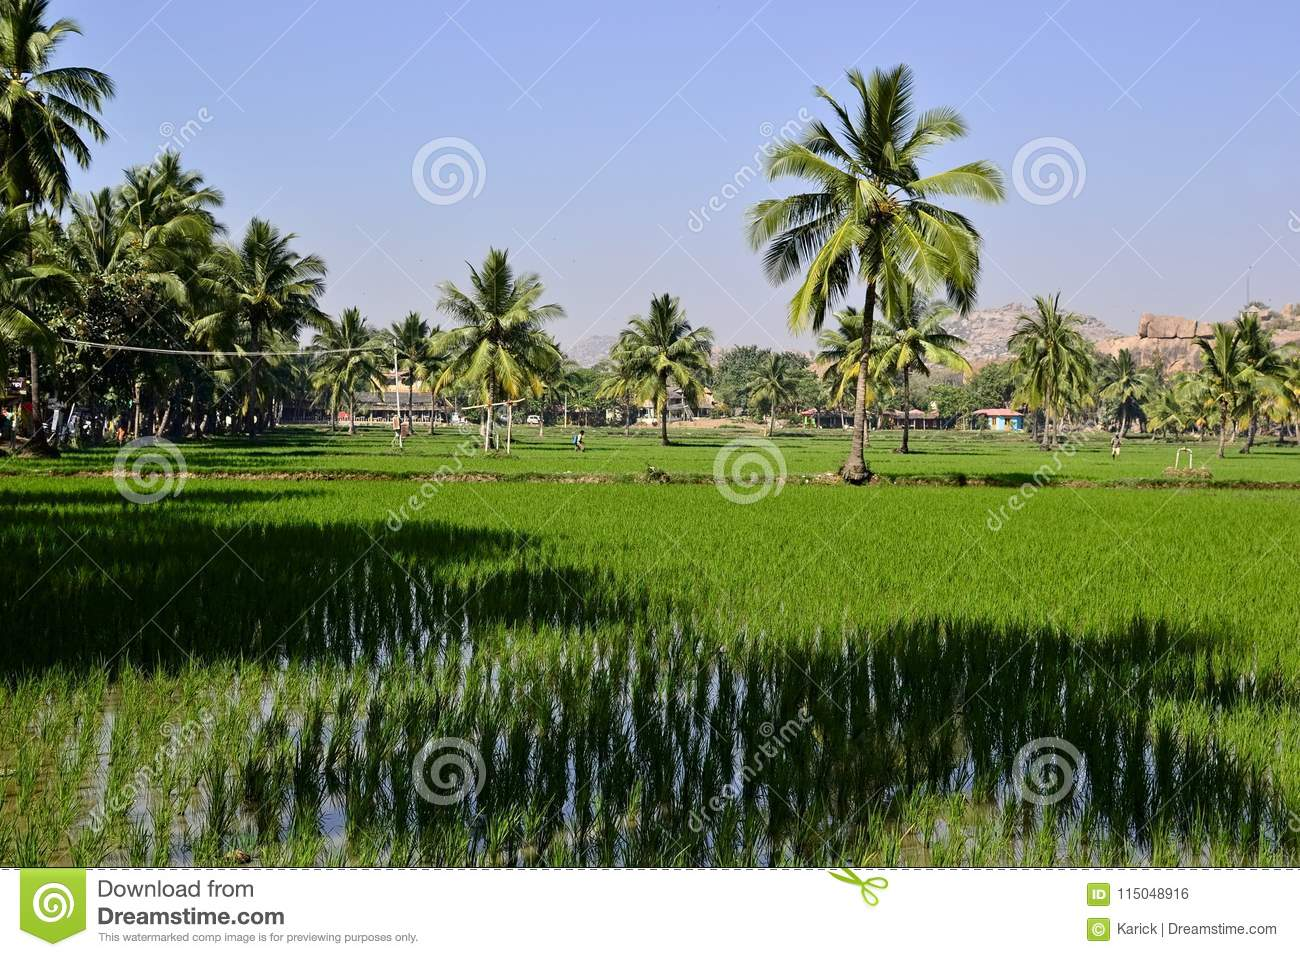 Flooded Rice Fields And Palm Trees Stock Photo - Image of ...